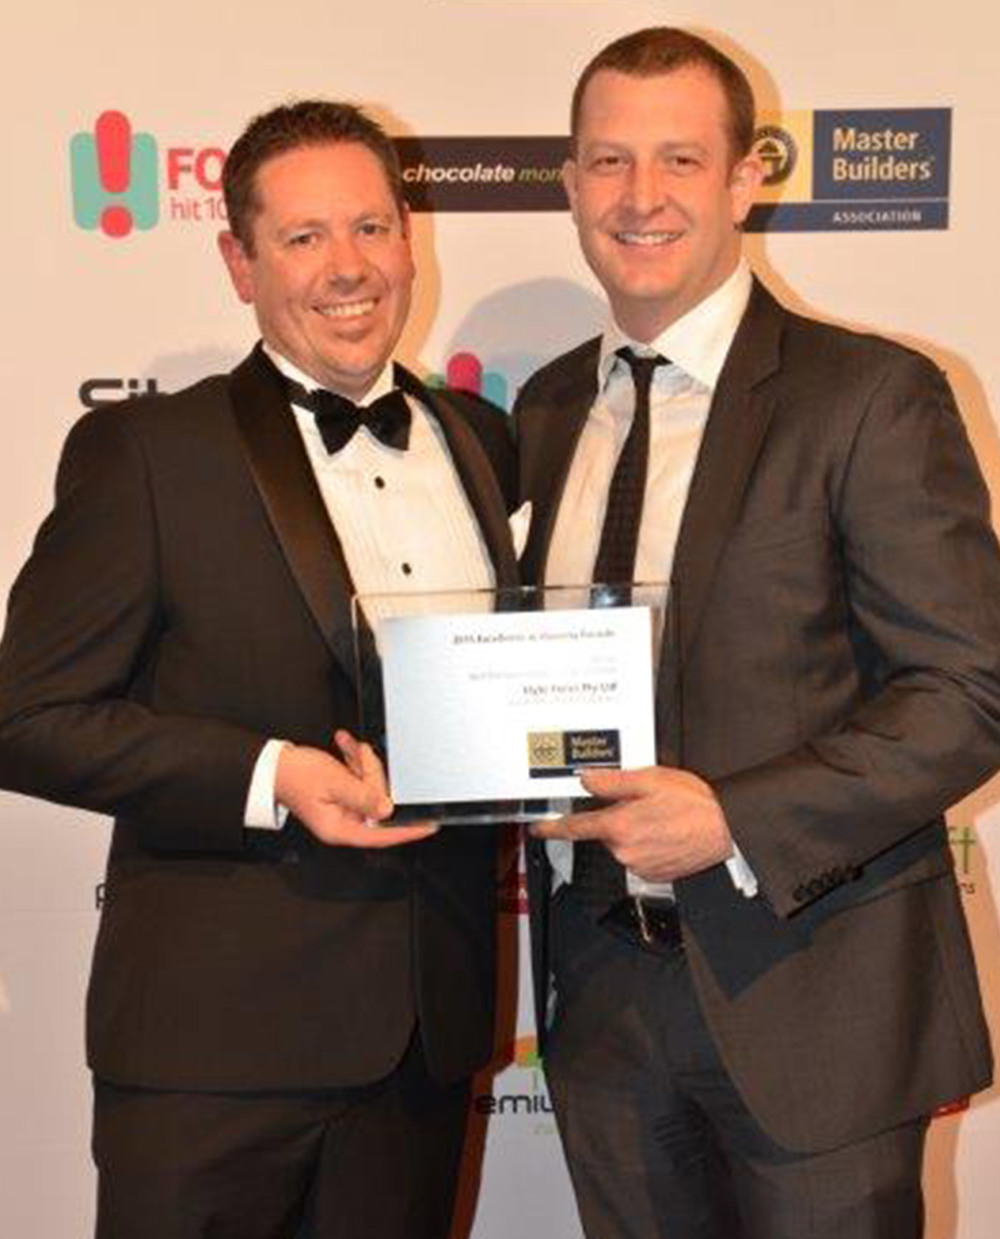 Pete Furlong (right) of Elyte Focus receives the award from Craig Flenley of Crowther Blayne.